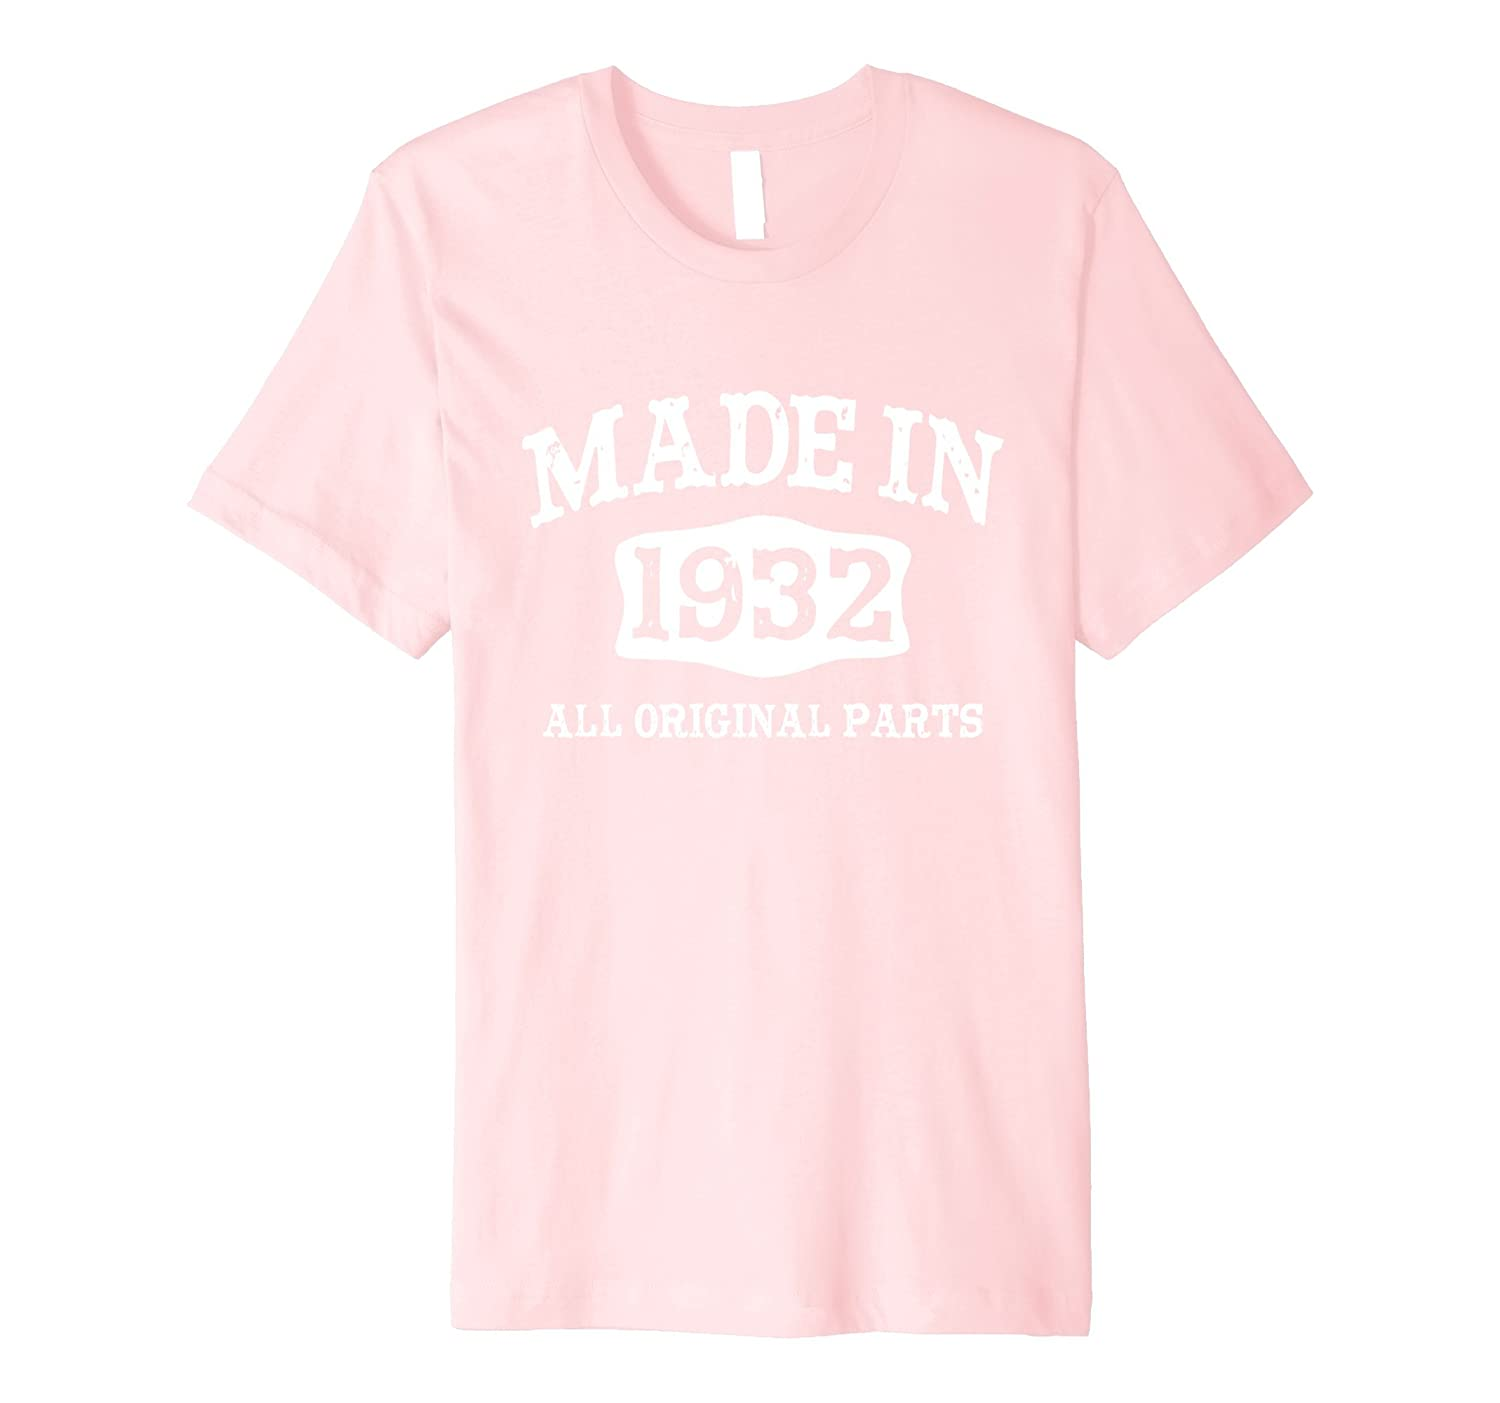 c7dfa7f0 85th Birthday Gift T-Shirt Made In 1932 Fitted-PL – Polozatee